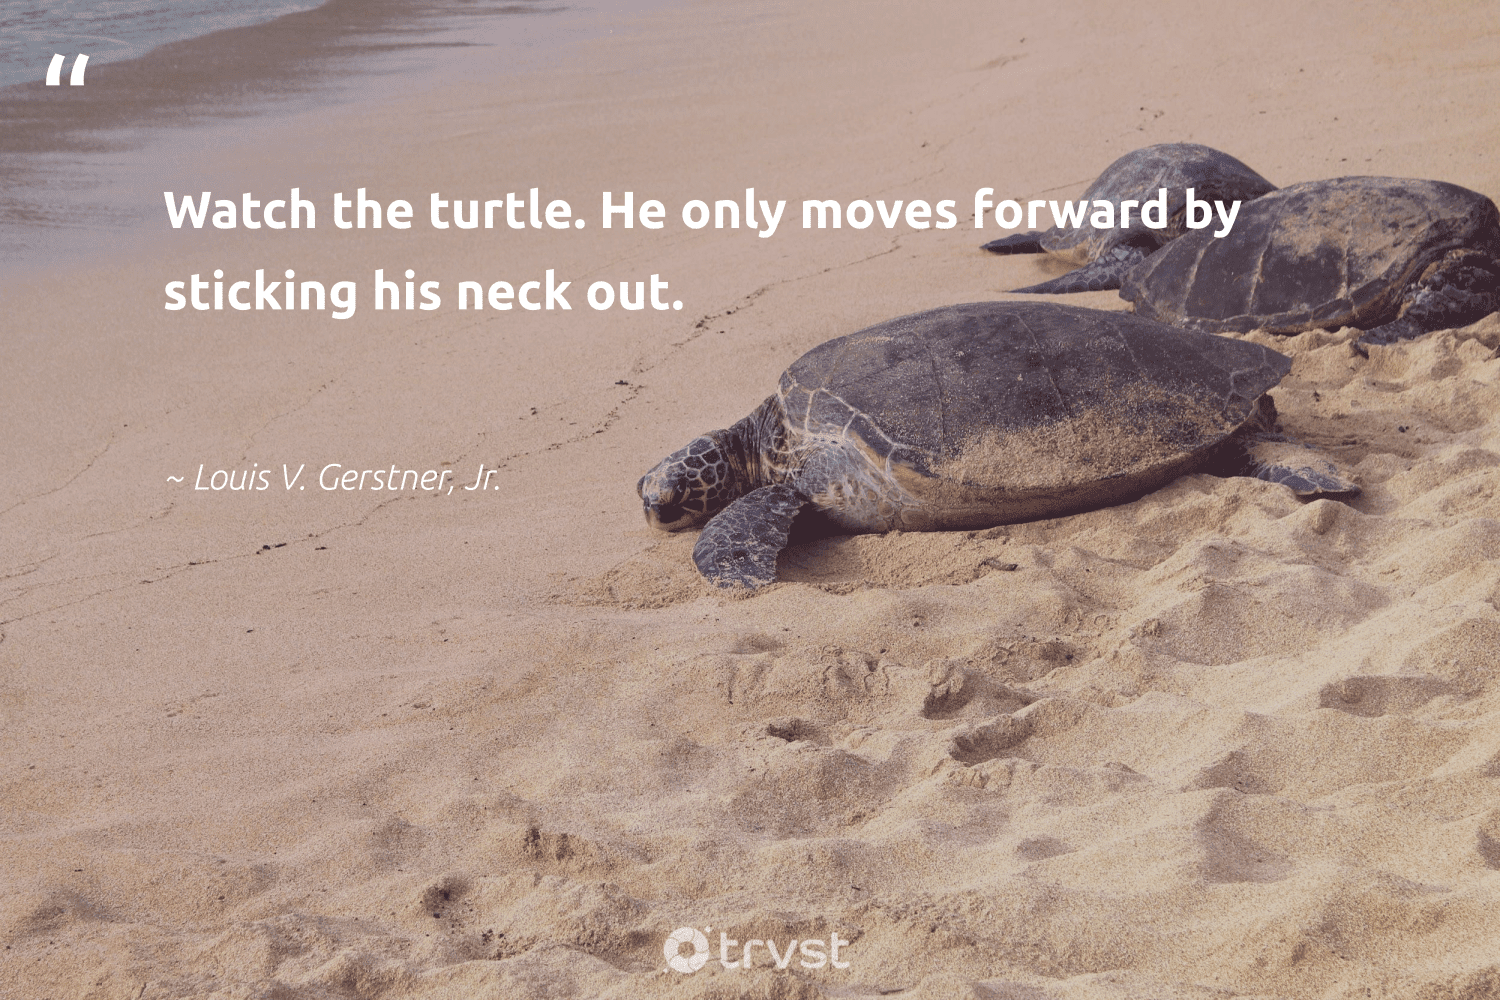 """""""Watch the turtle. He only moves forward by sticking his neck out.""""  - Louis V. Gerstner, Jr. #trvst #quotes #turtle #savetheturtle #changetheworld #marinelife #planetearthfirst #wildlifeprotection #gogreen #perfectnature #collectiveaction #sustainability"""